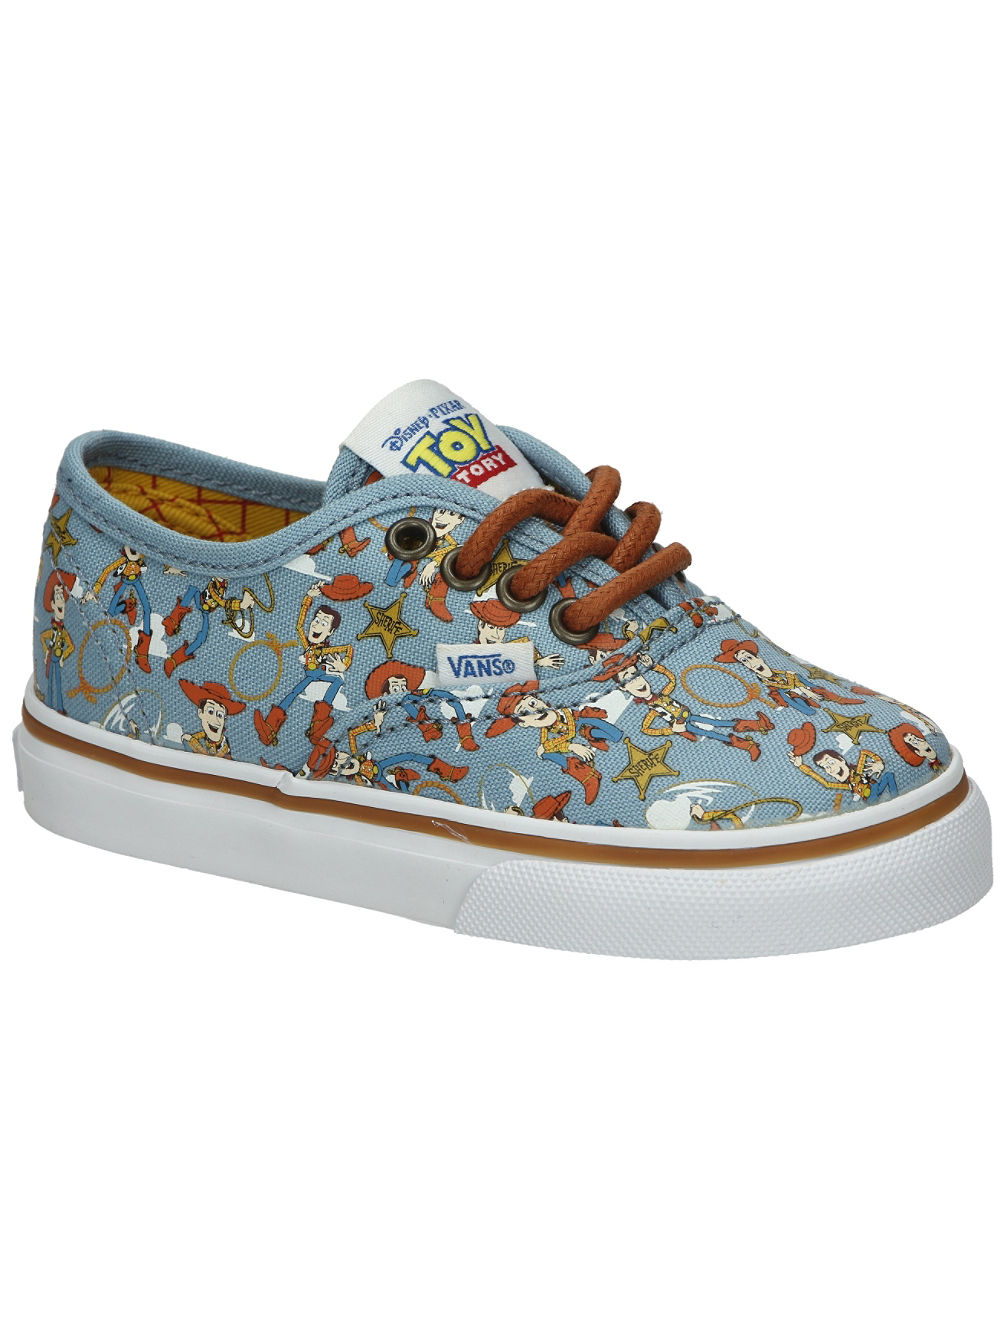 3285edbecacd04 Buy Vans Authentic Toy Story Sneakers Toddlers online at Blue Tomato